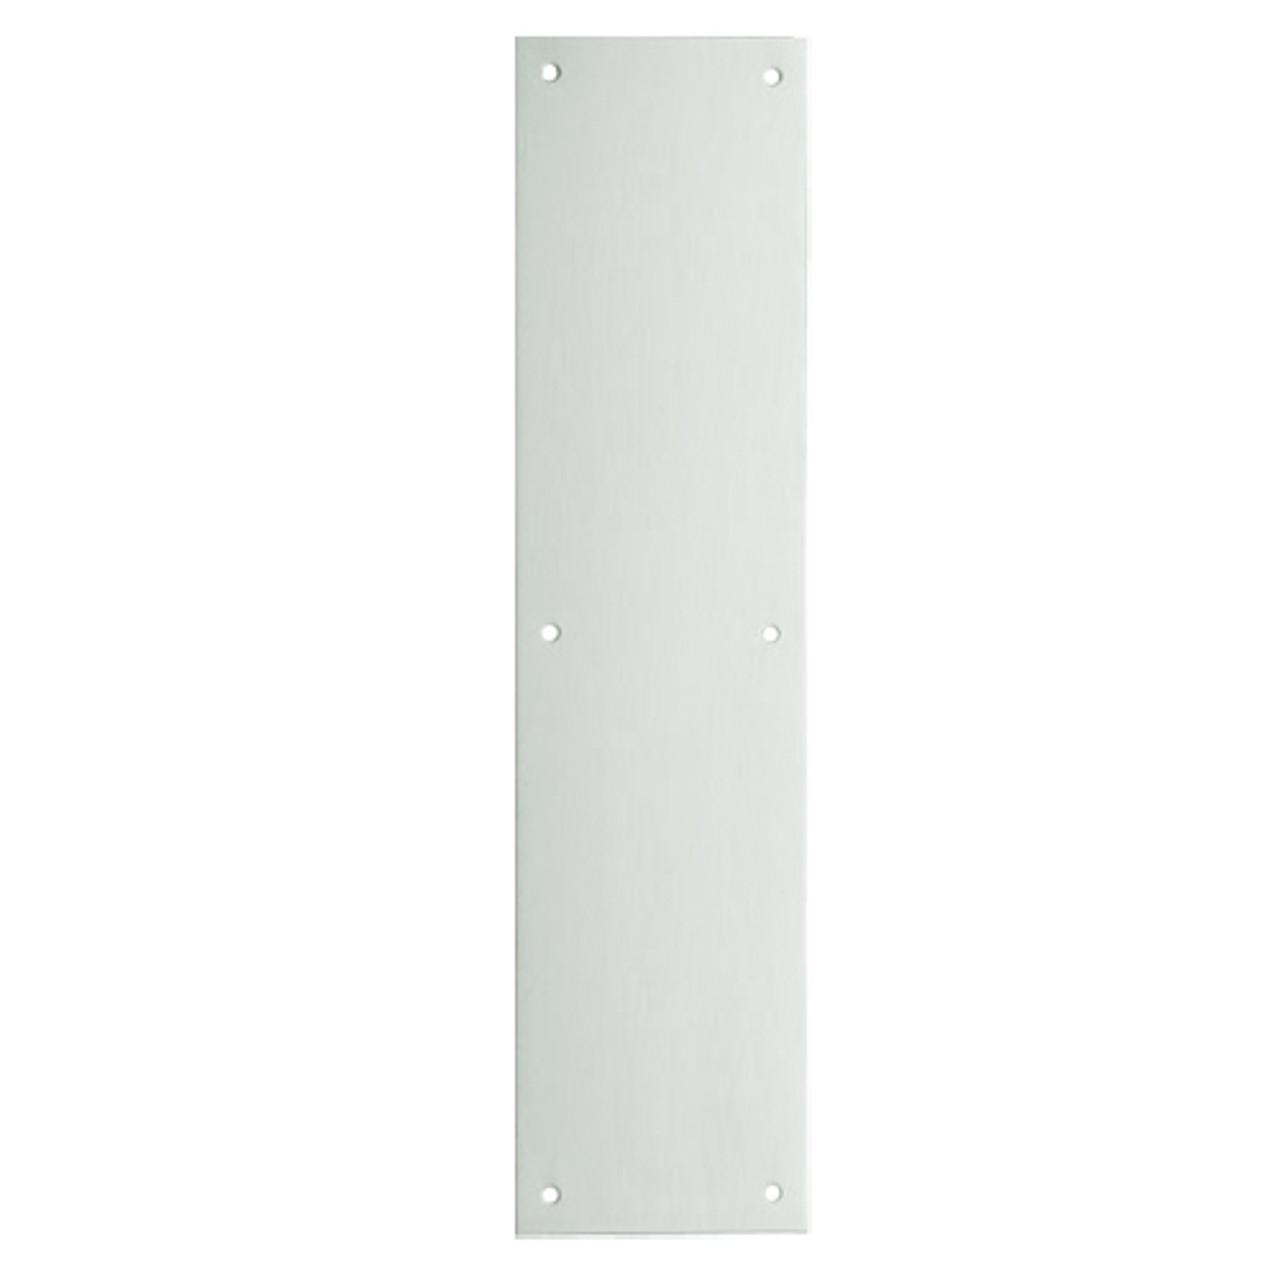 8200-US15-3-5x15 IVES Architectural Door Trim 3.5x15 Inch Push Plate in Satin Nickel